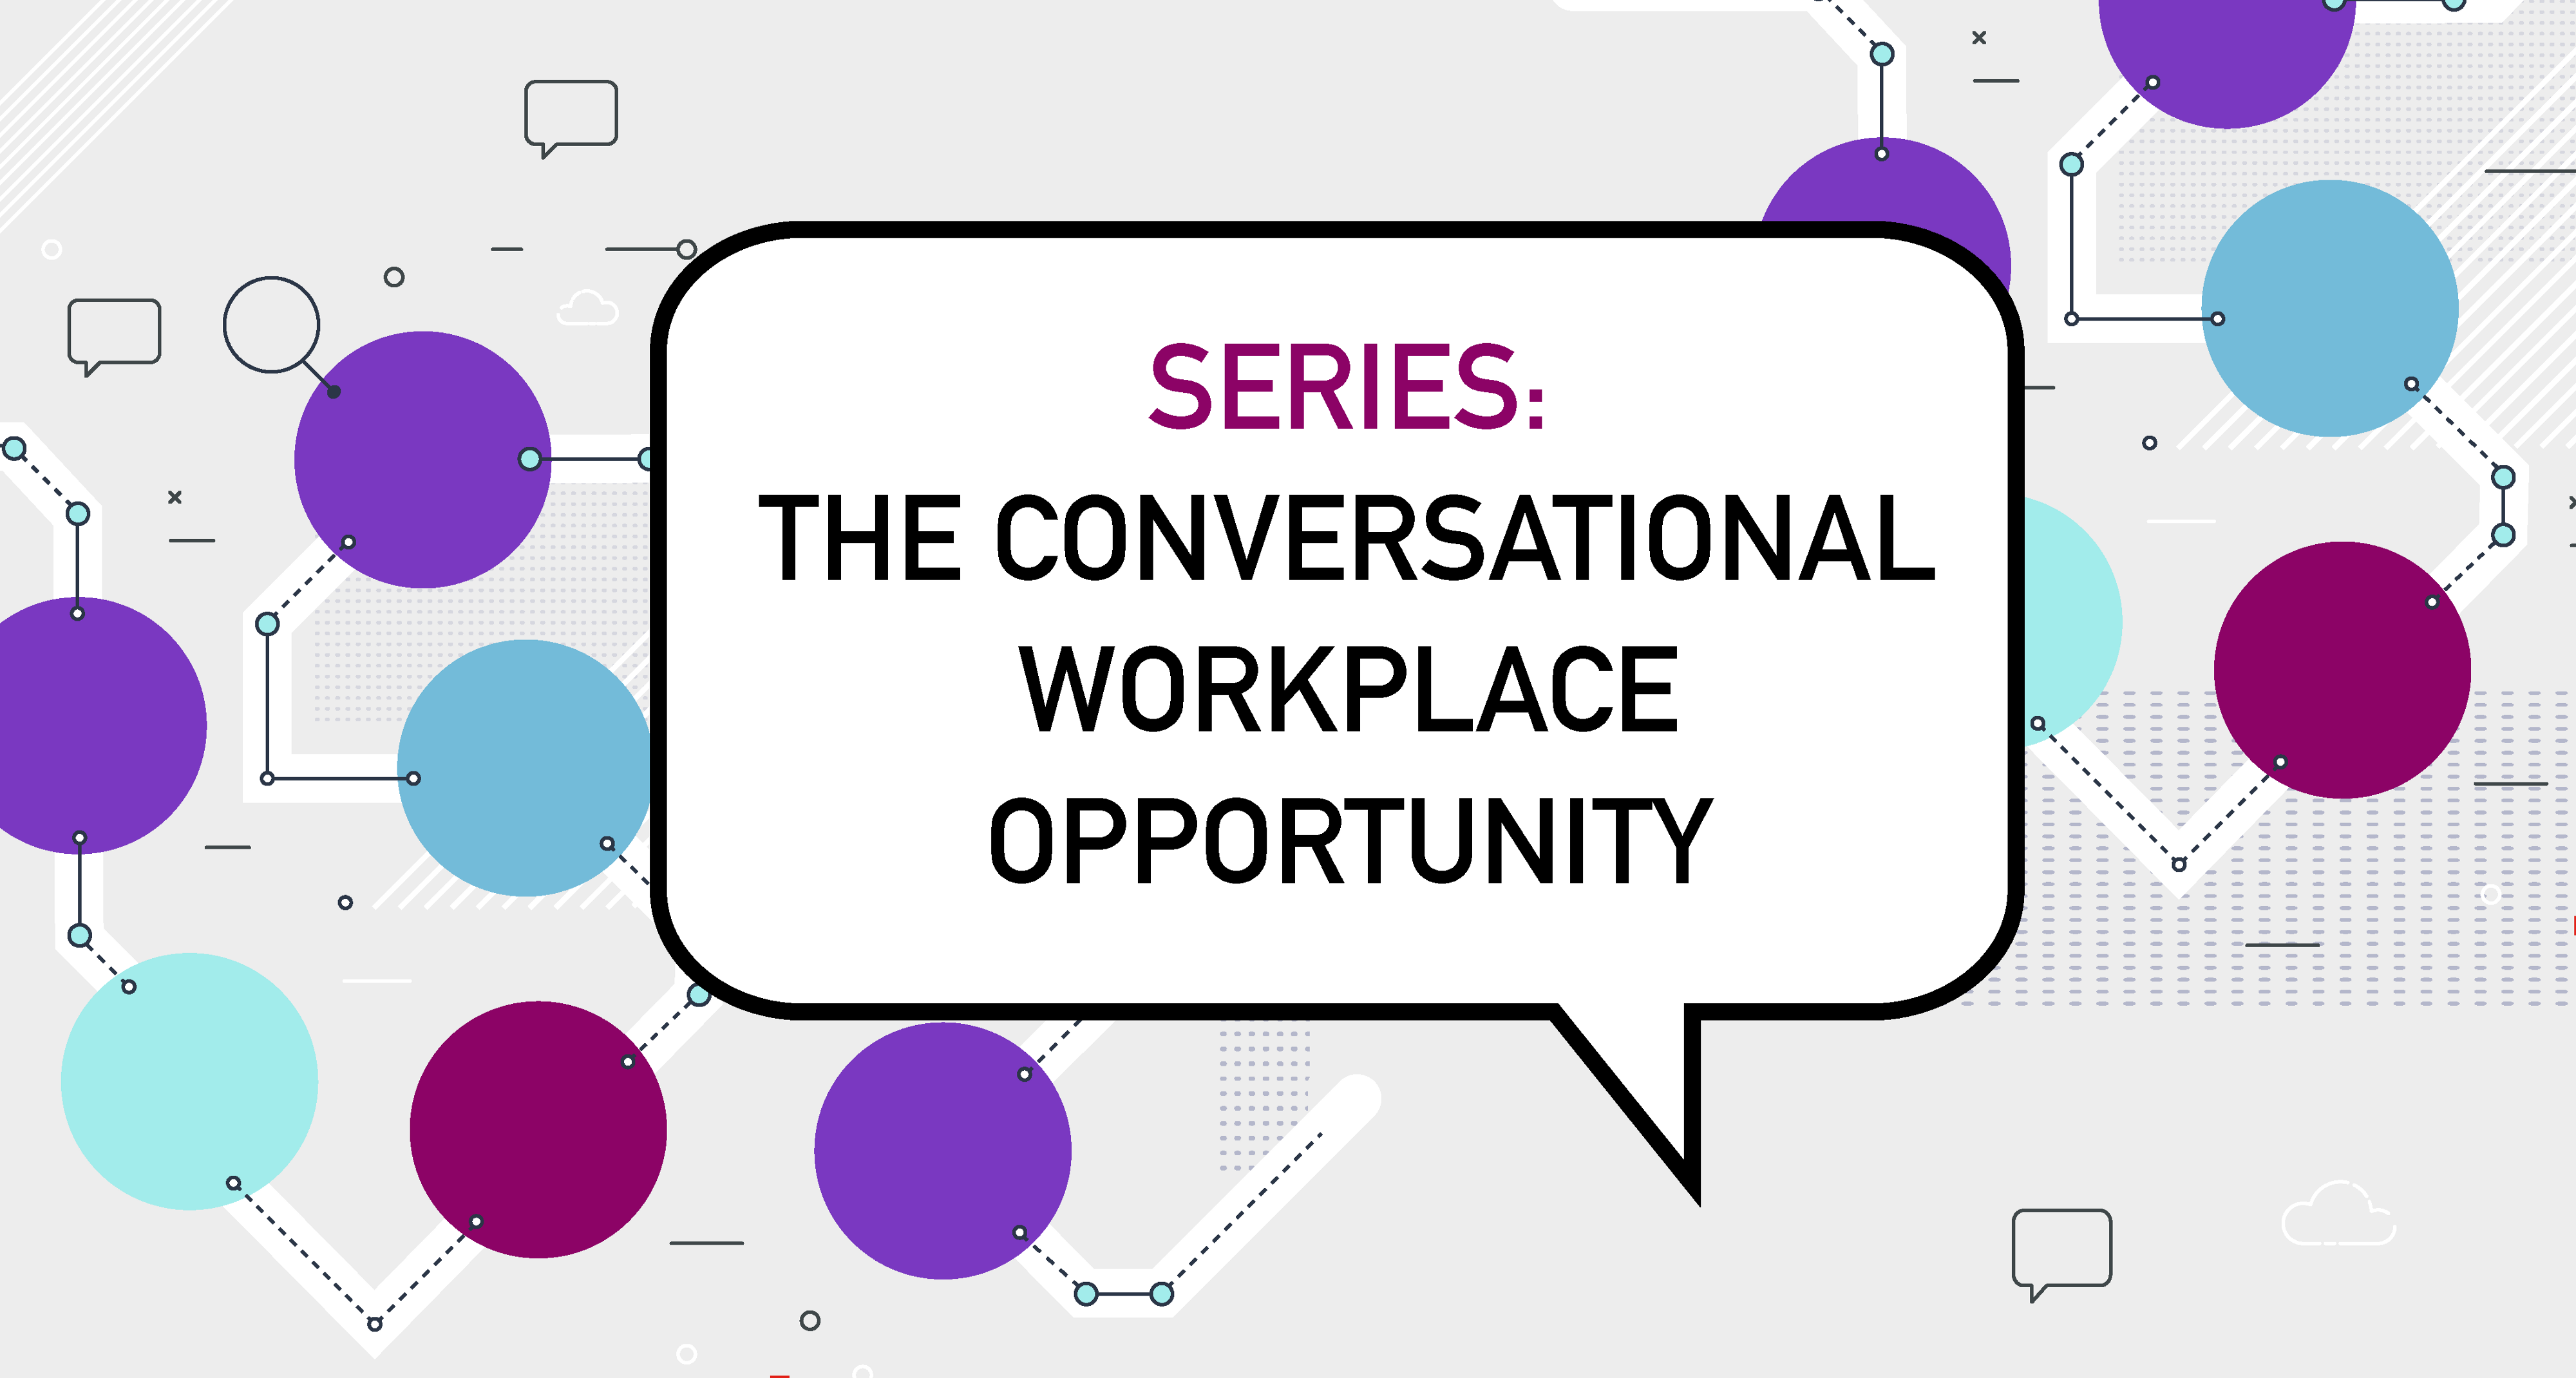 Conversational workplace opportunity banner